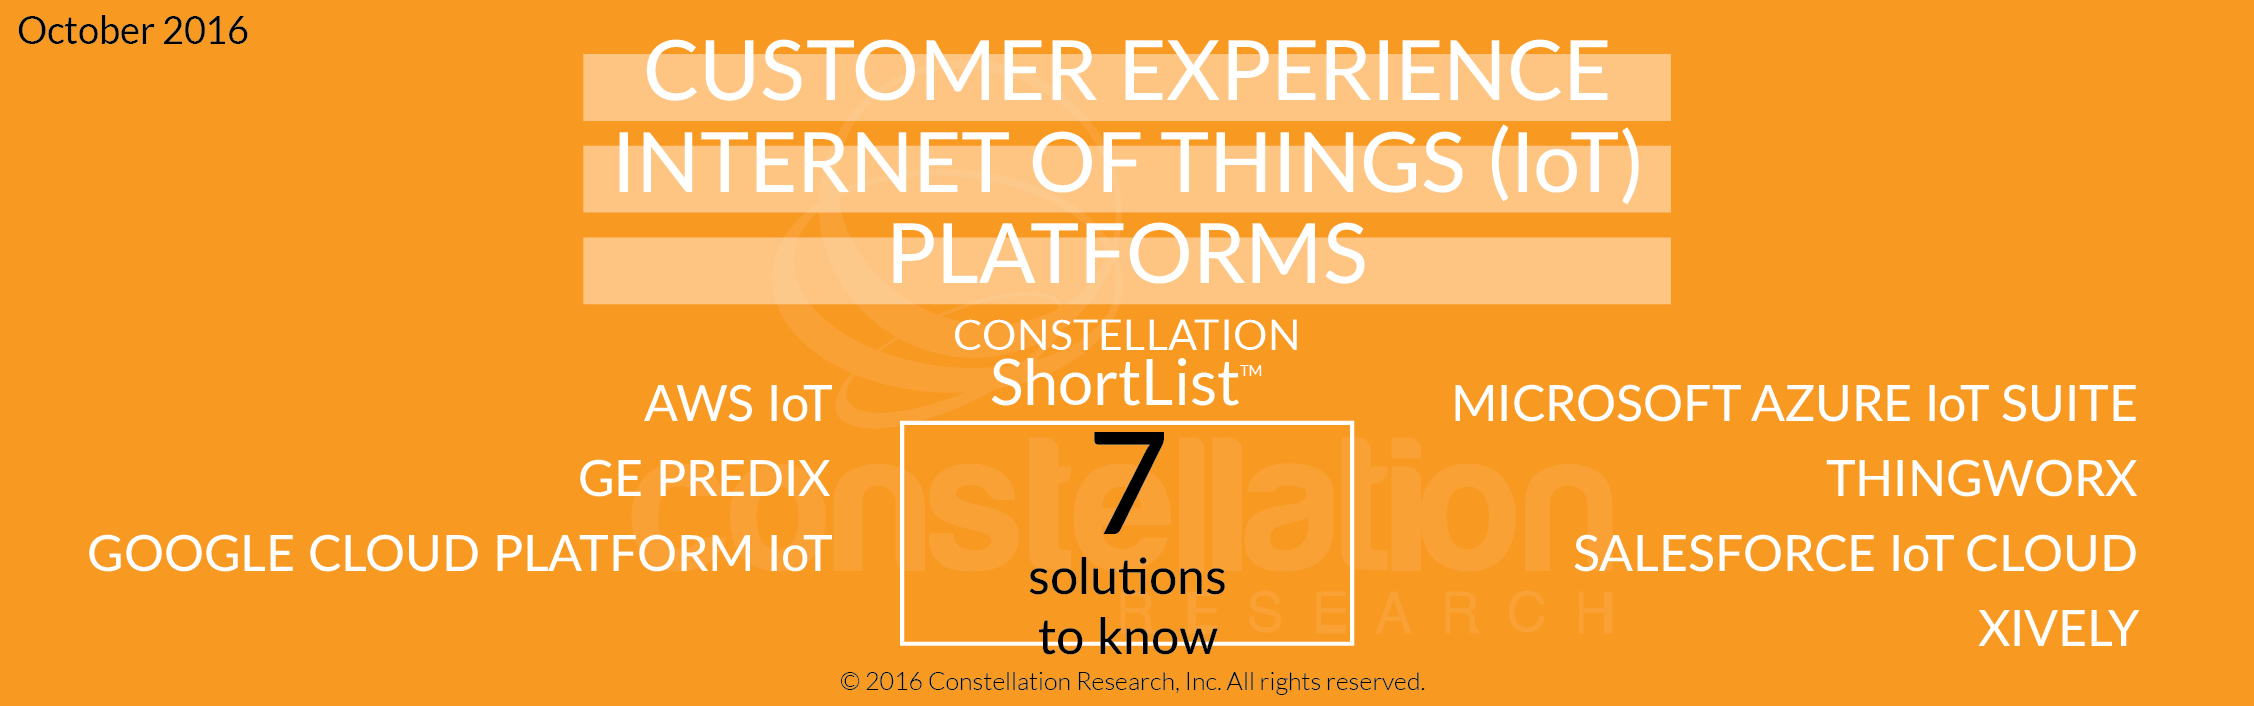 Constellation ShortList™ for Customer Experience (CX): IOT Platforms